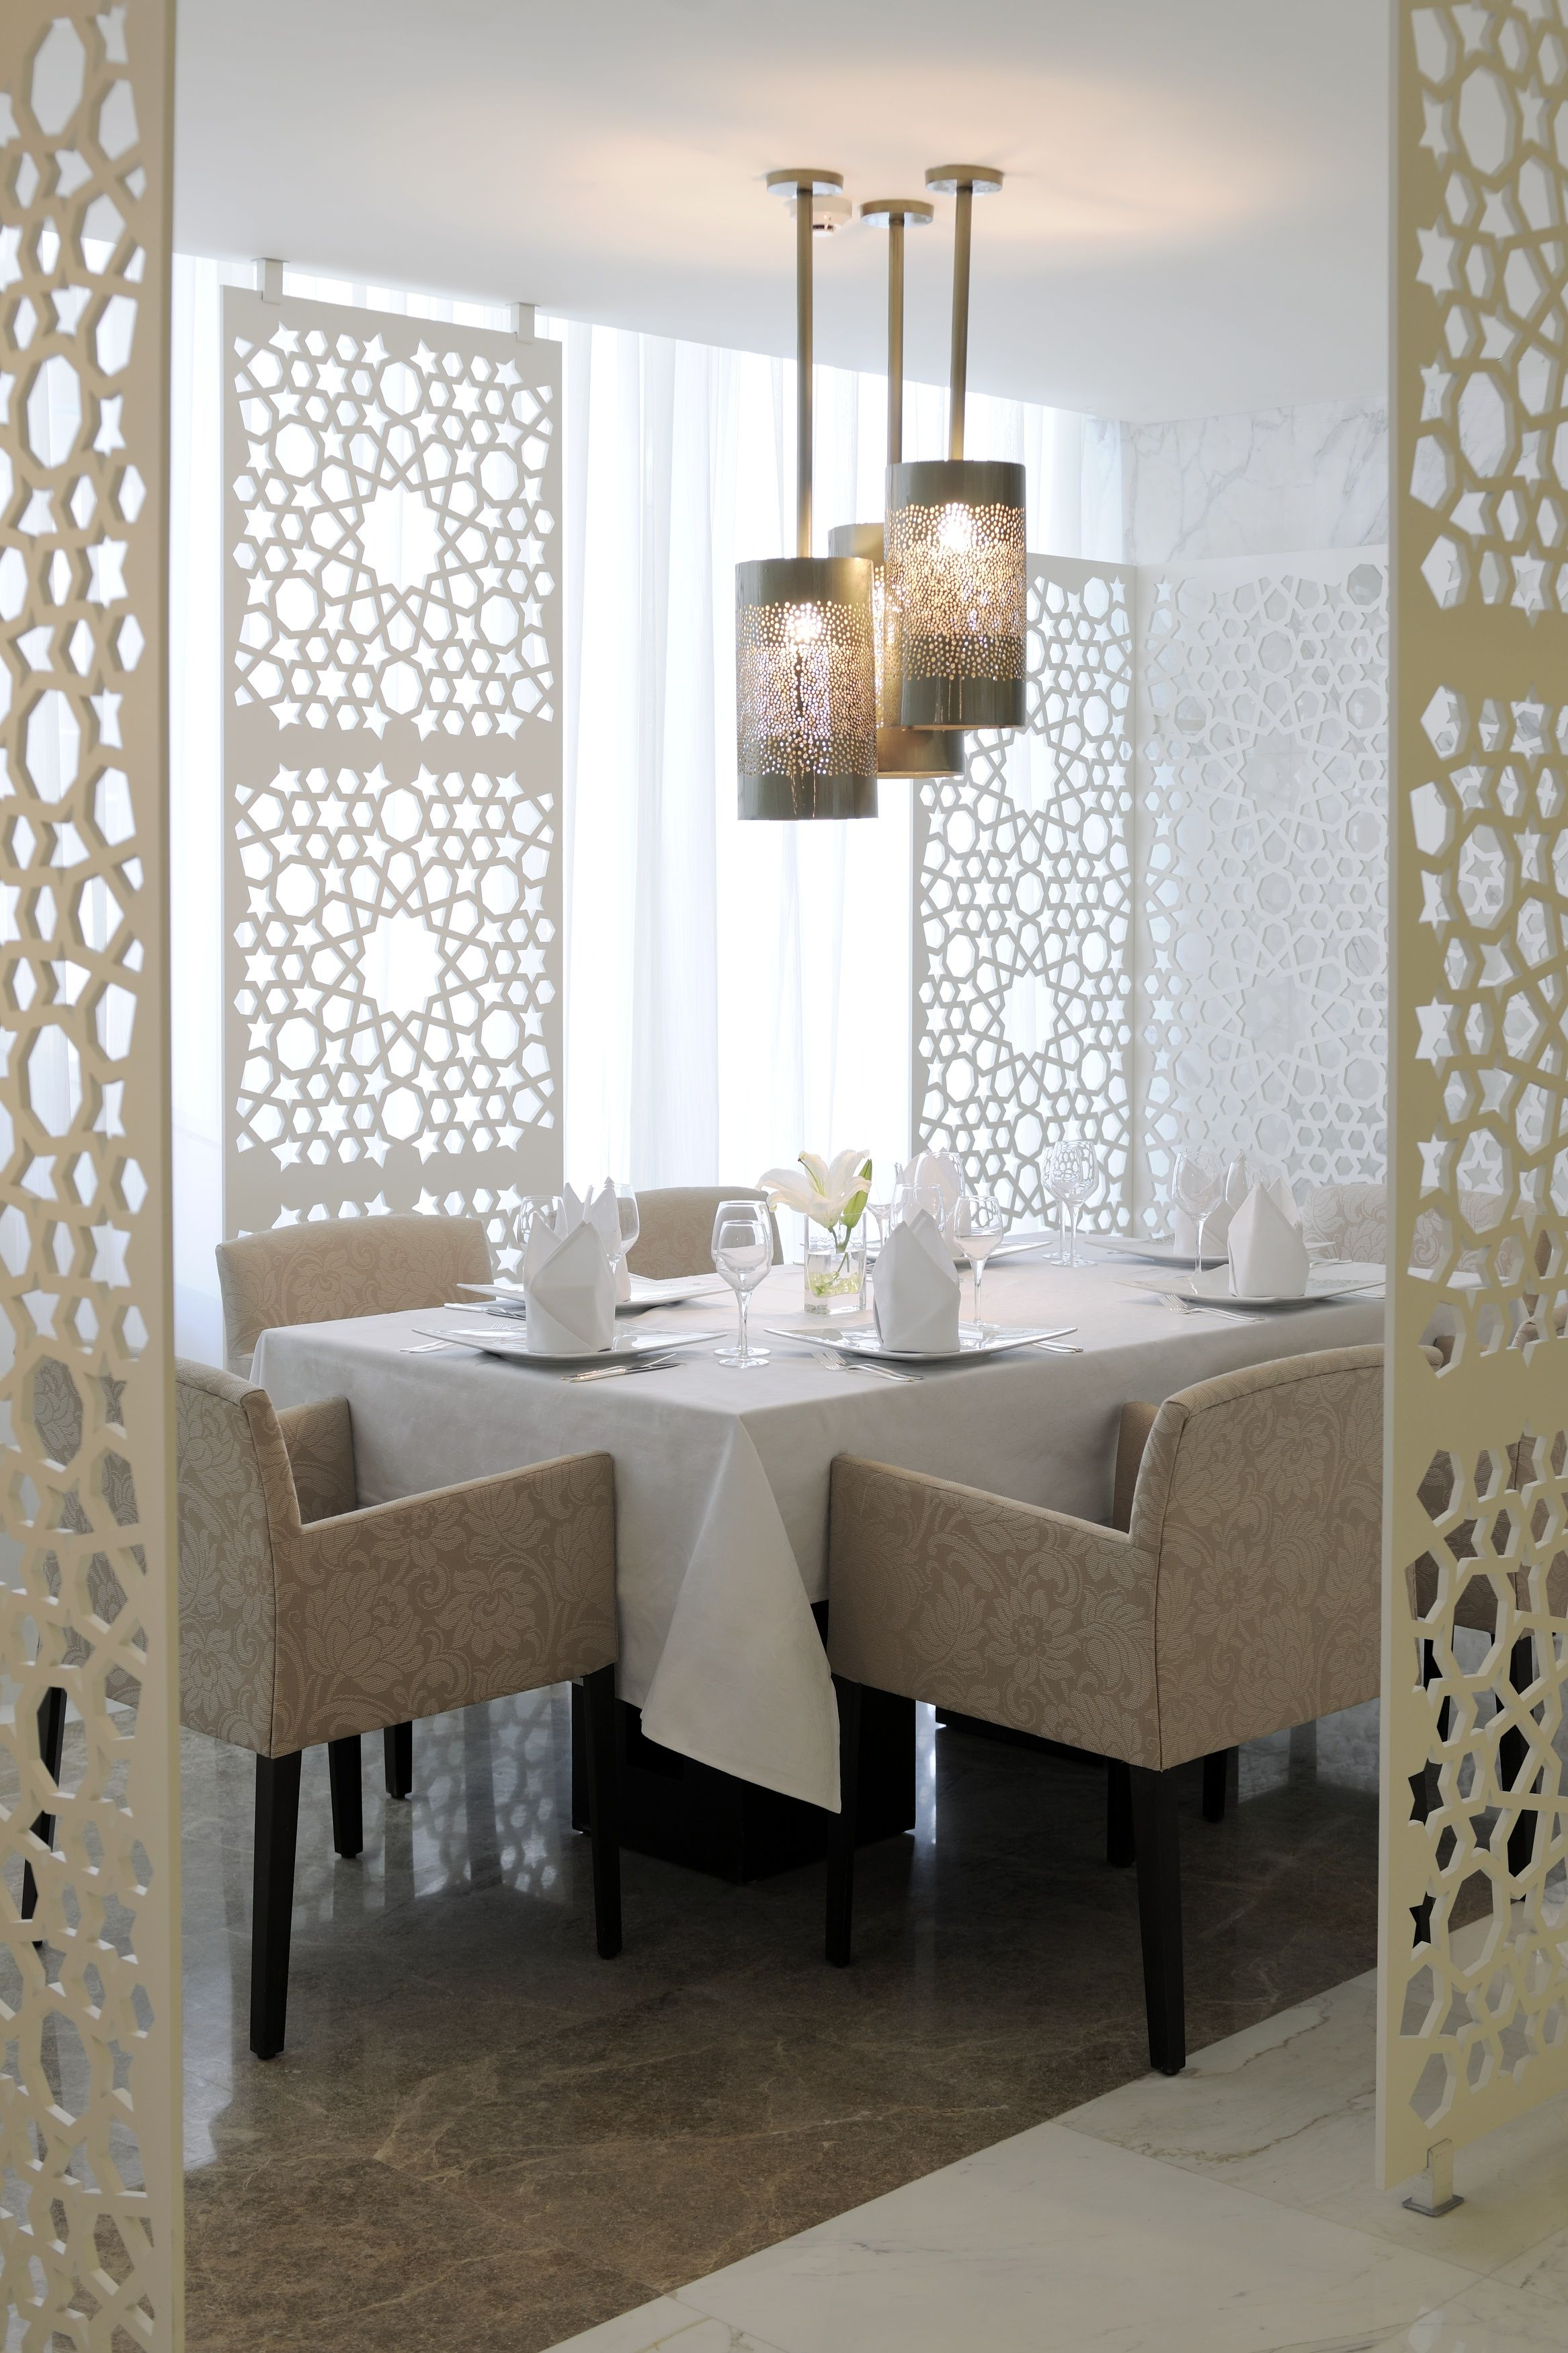 Arabic Restaurant Serving Gulf Food Concept And Design By DLG Modern Interior